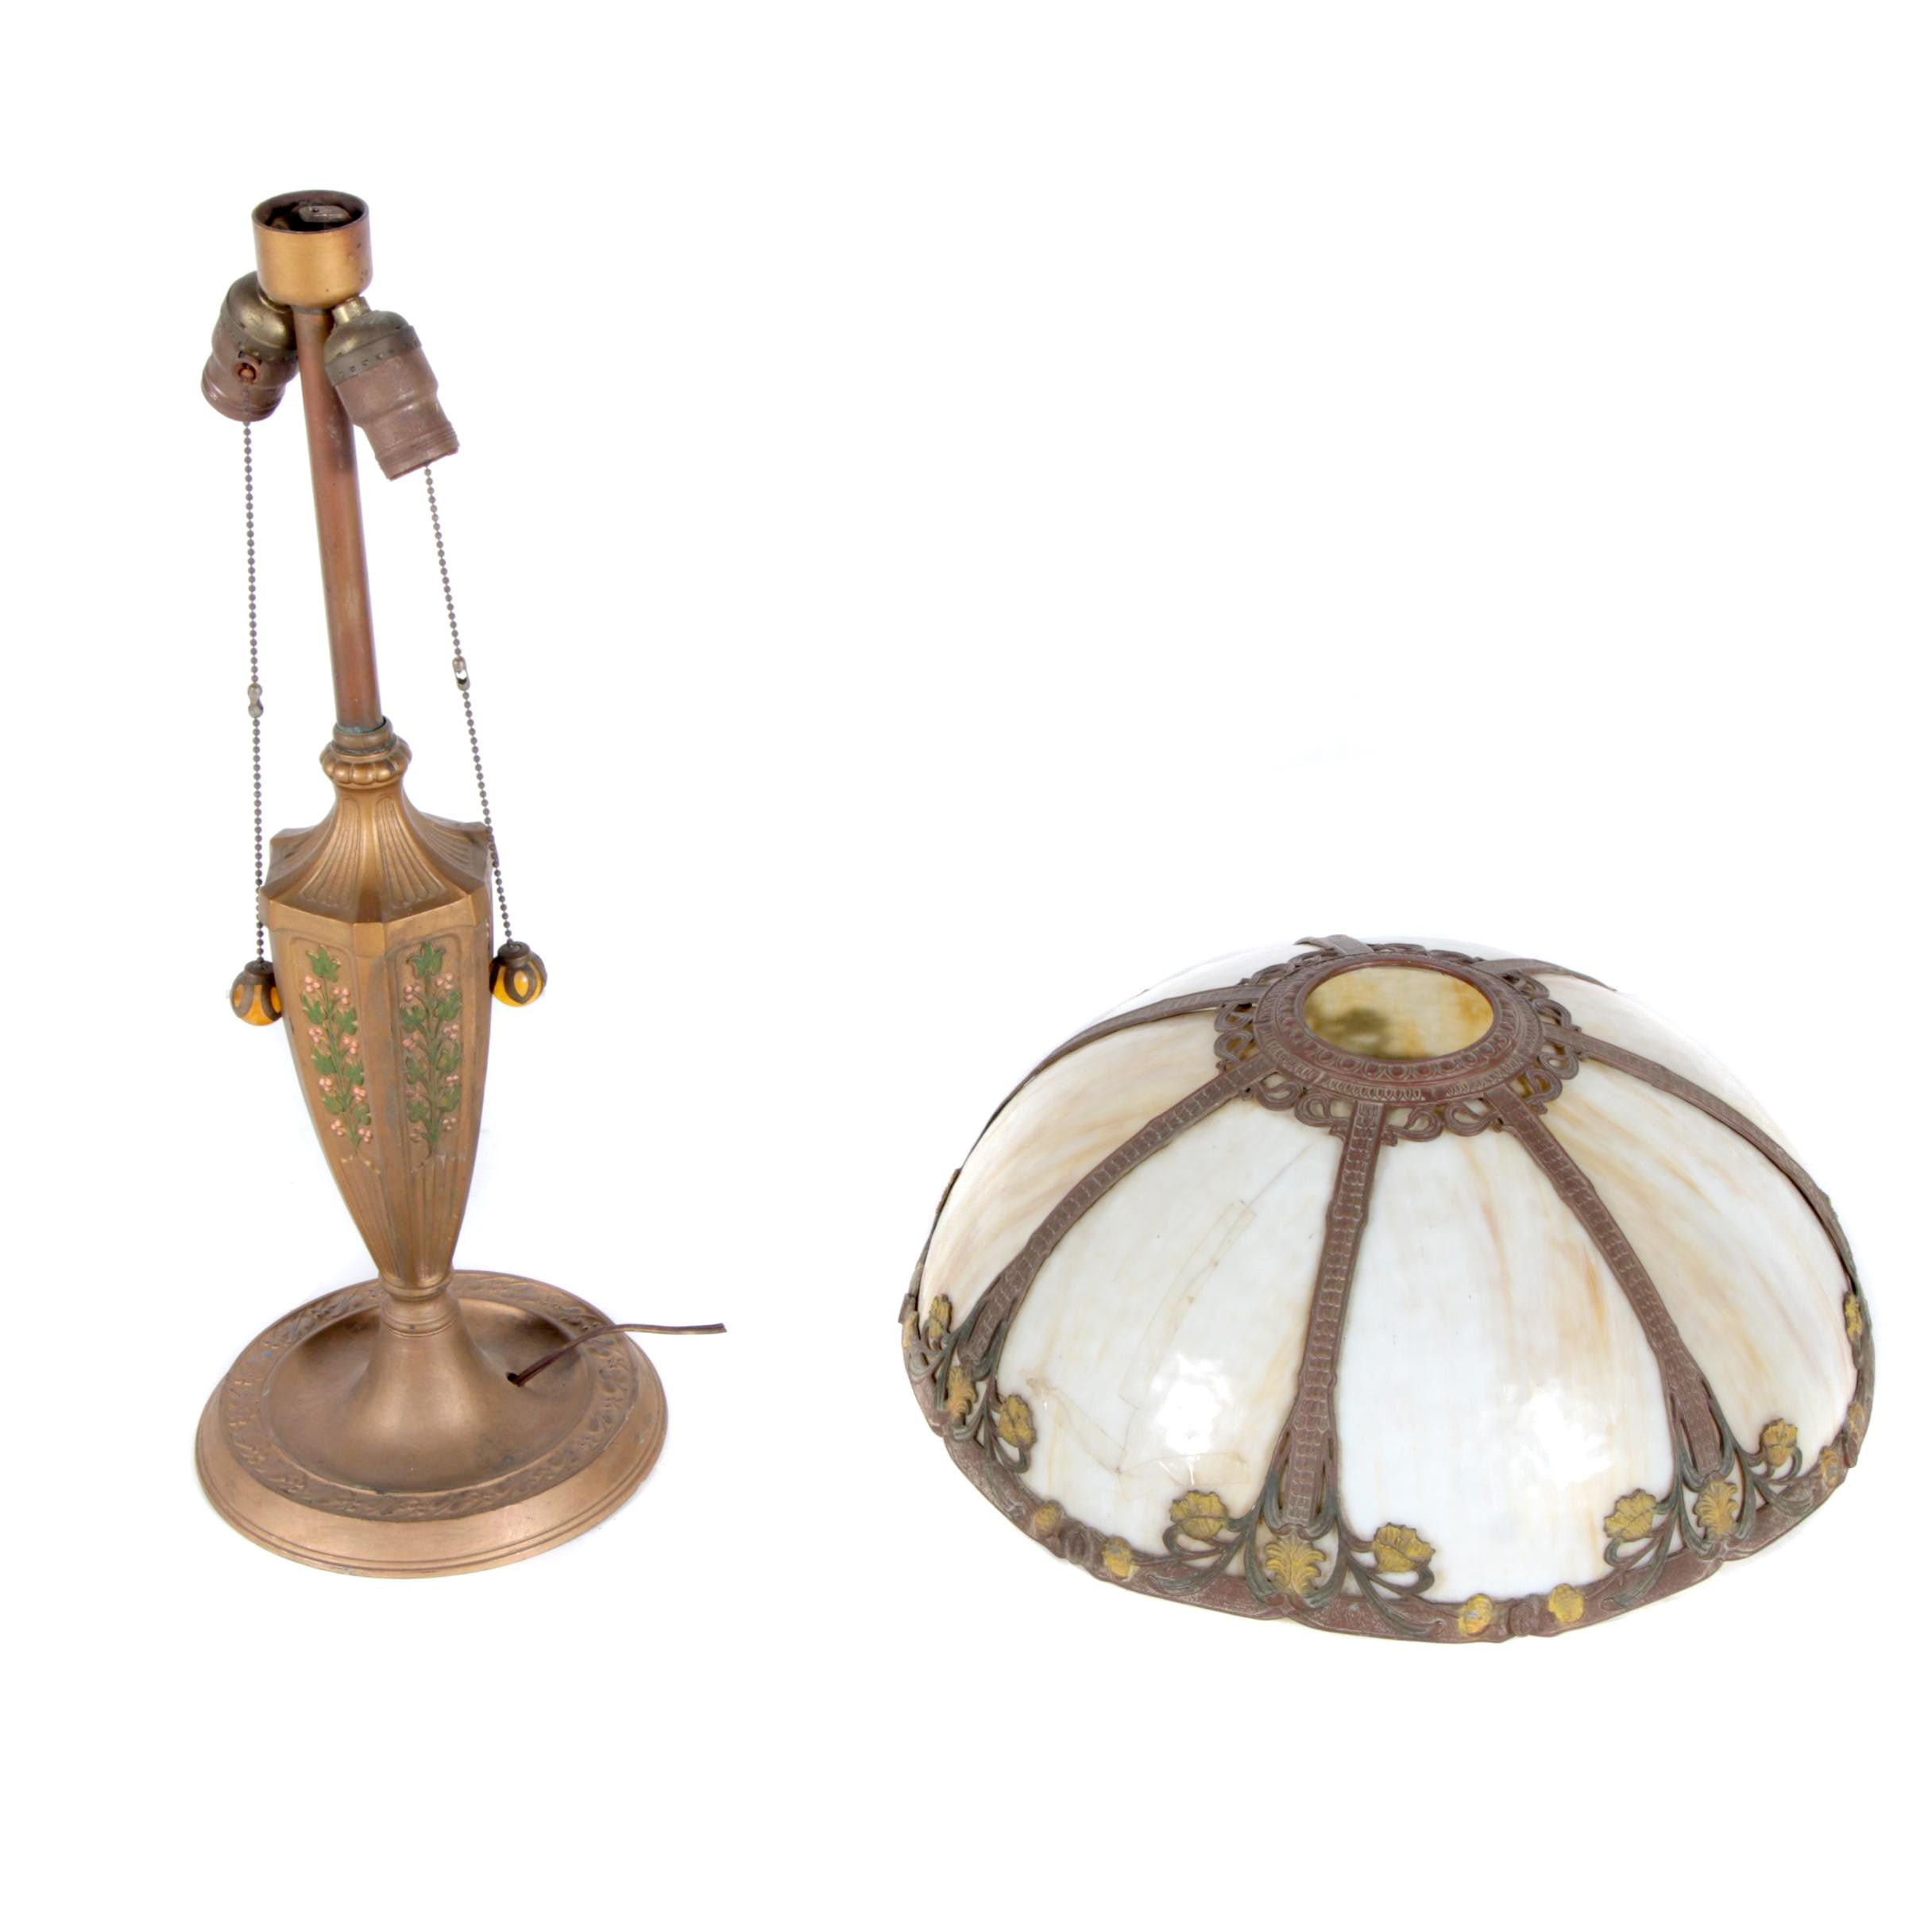 Solid Brass Lamp and Glass Shade